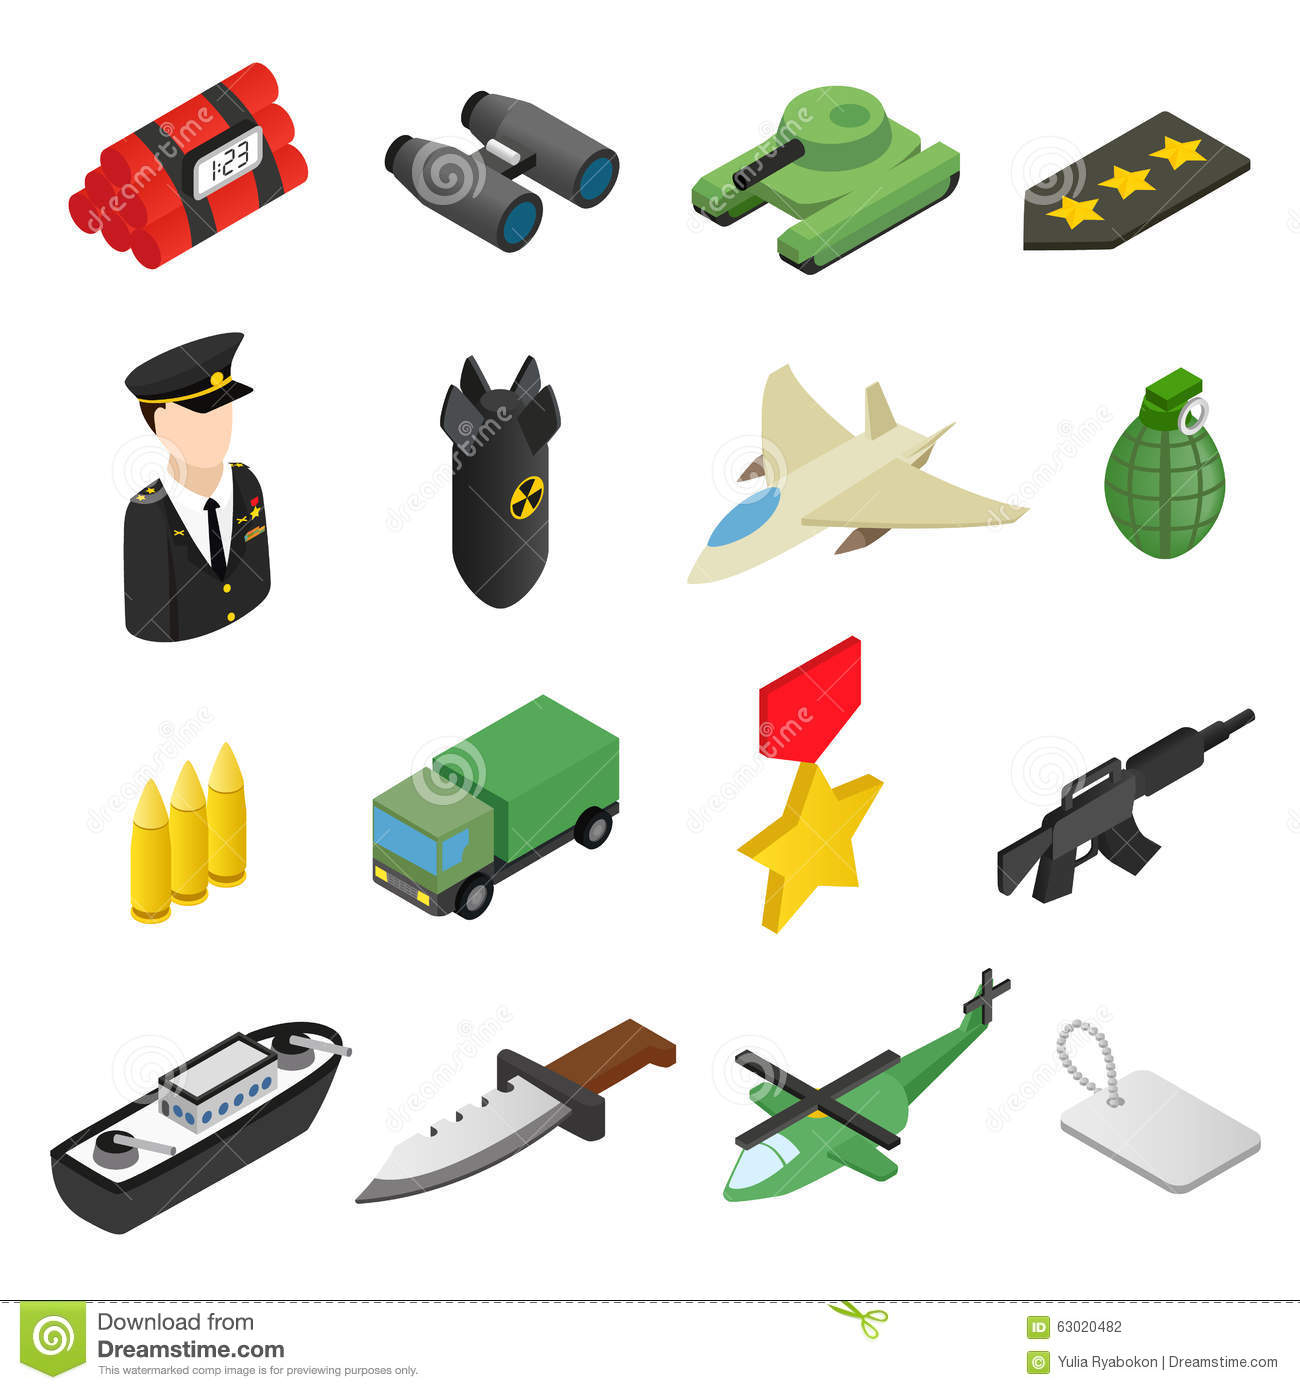 helicopter war game free download with Stock Illustration Weapon Isometric D Icons Set Color Illustrations Military Truck Helicopter Ship Image63020482 on 32108 furthermore T92 Heavy Siege Tank Doombringer 295462474 besides Military Equipment Set Vector  bat Air 593750801 together with War Thunder moreover Helicopters.